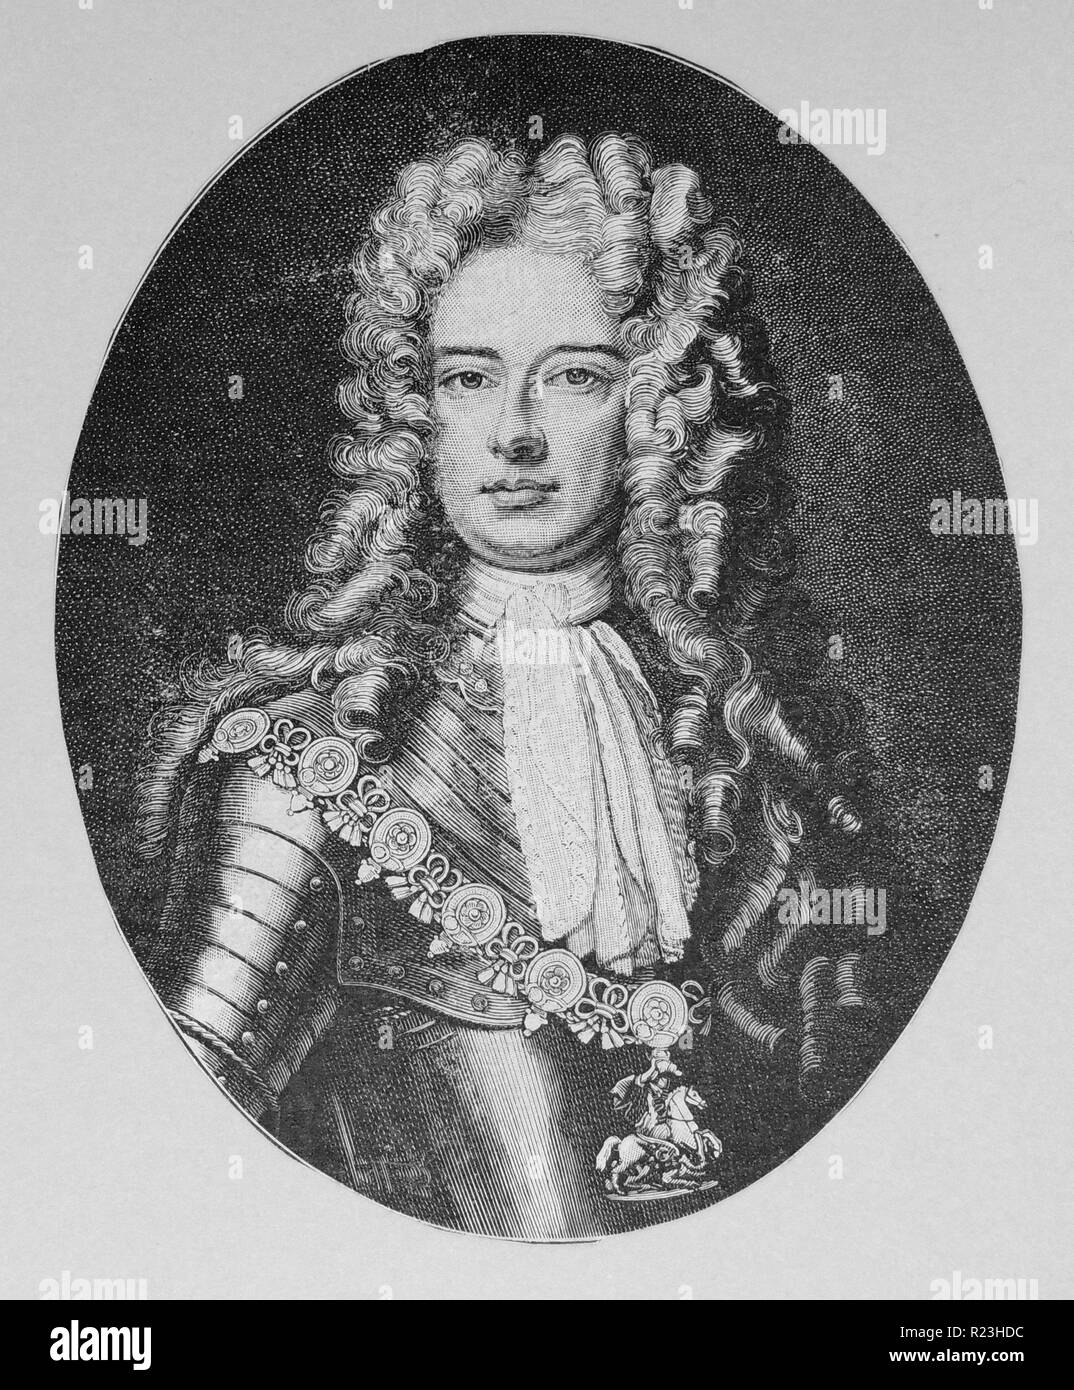 John Churchill 1st Duke of Marlborough (1650-1722) English soldier. In supreme command of British and Dutch forces during the War of the Spanish Succession (1701-1714). - Stock Image